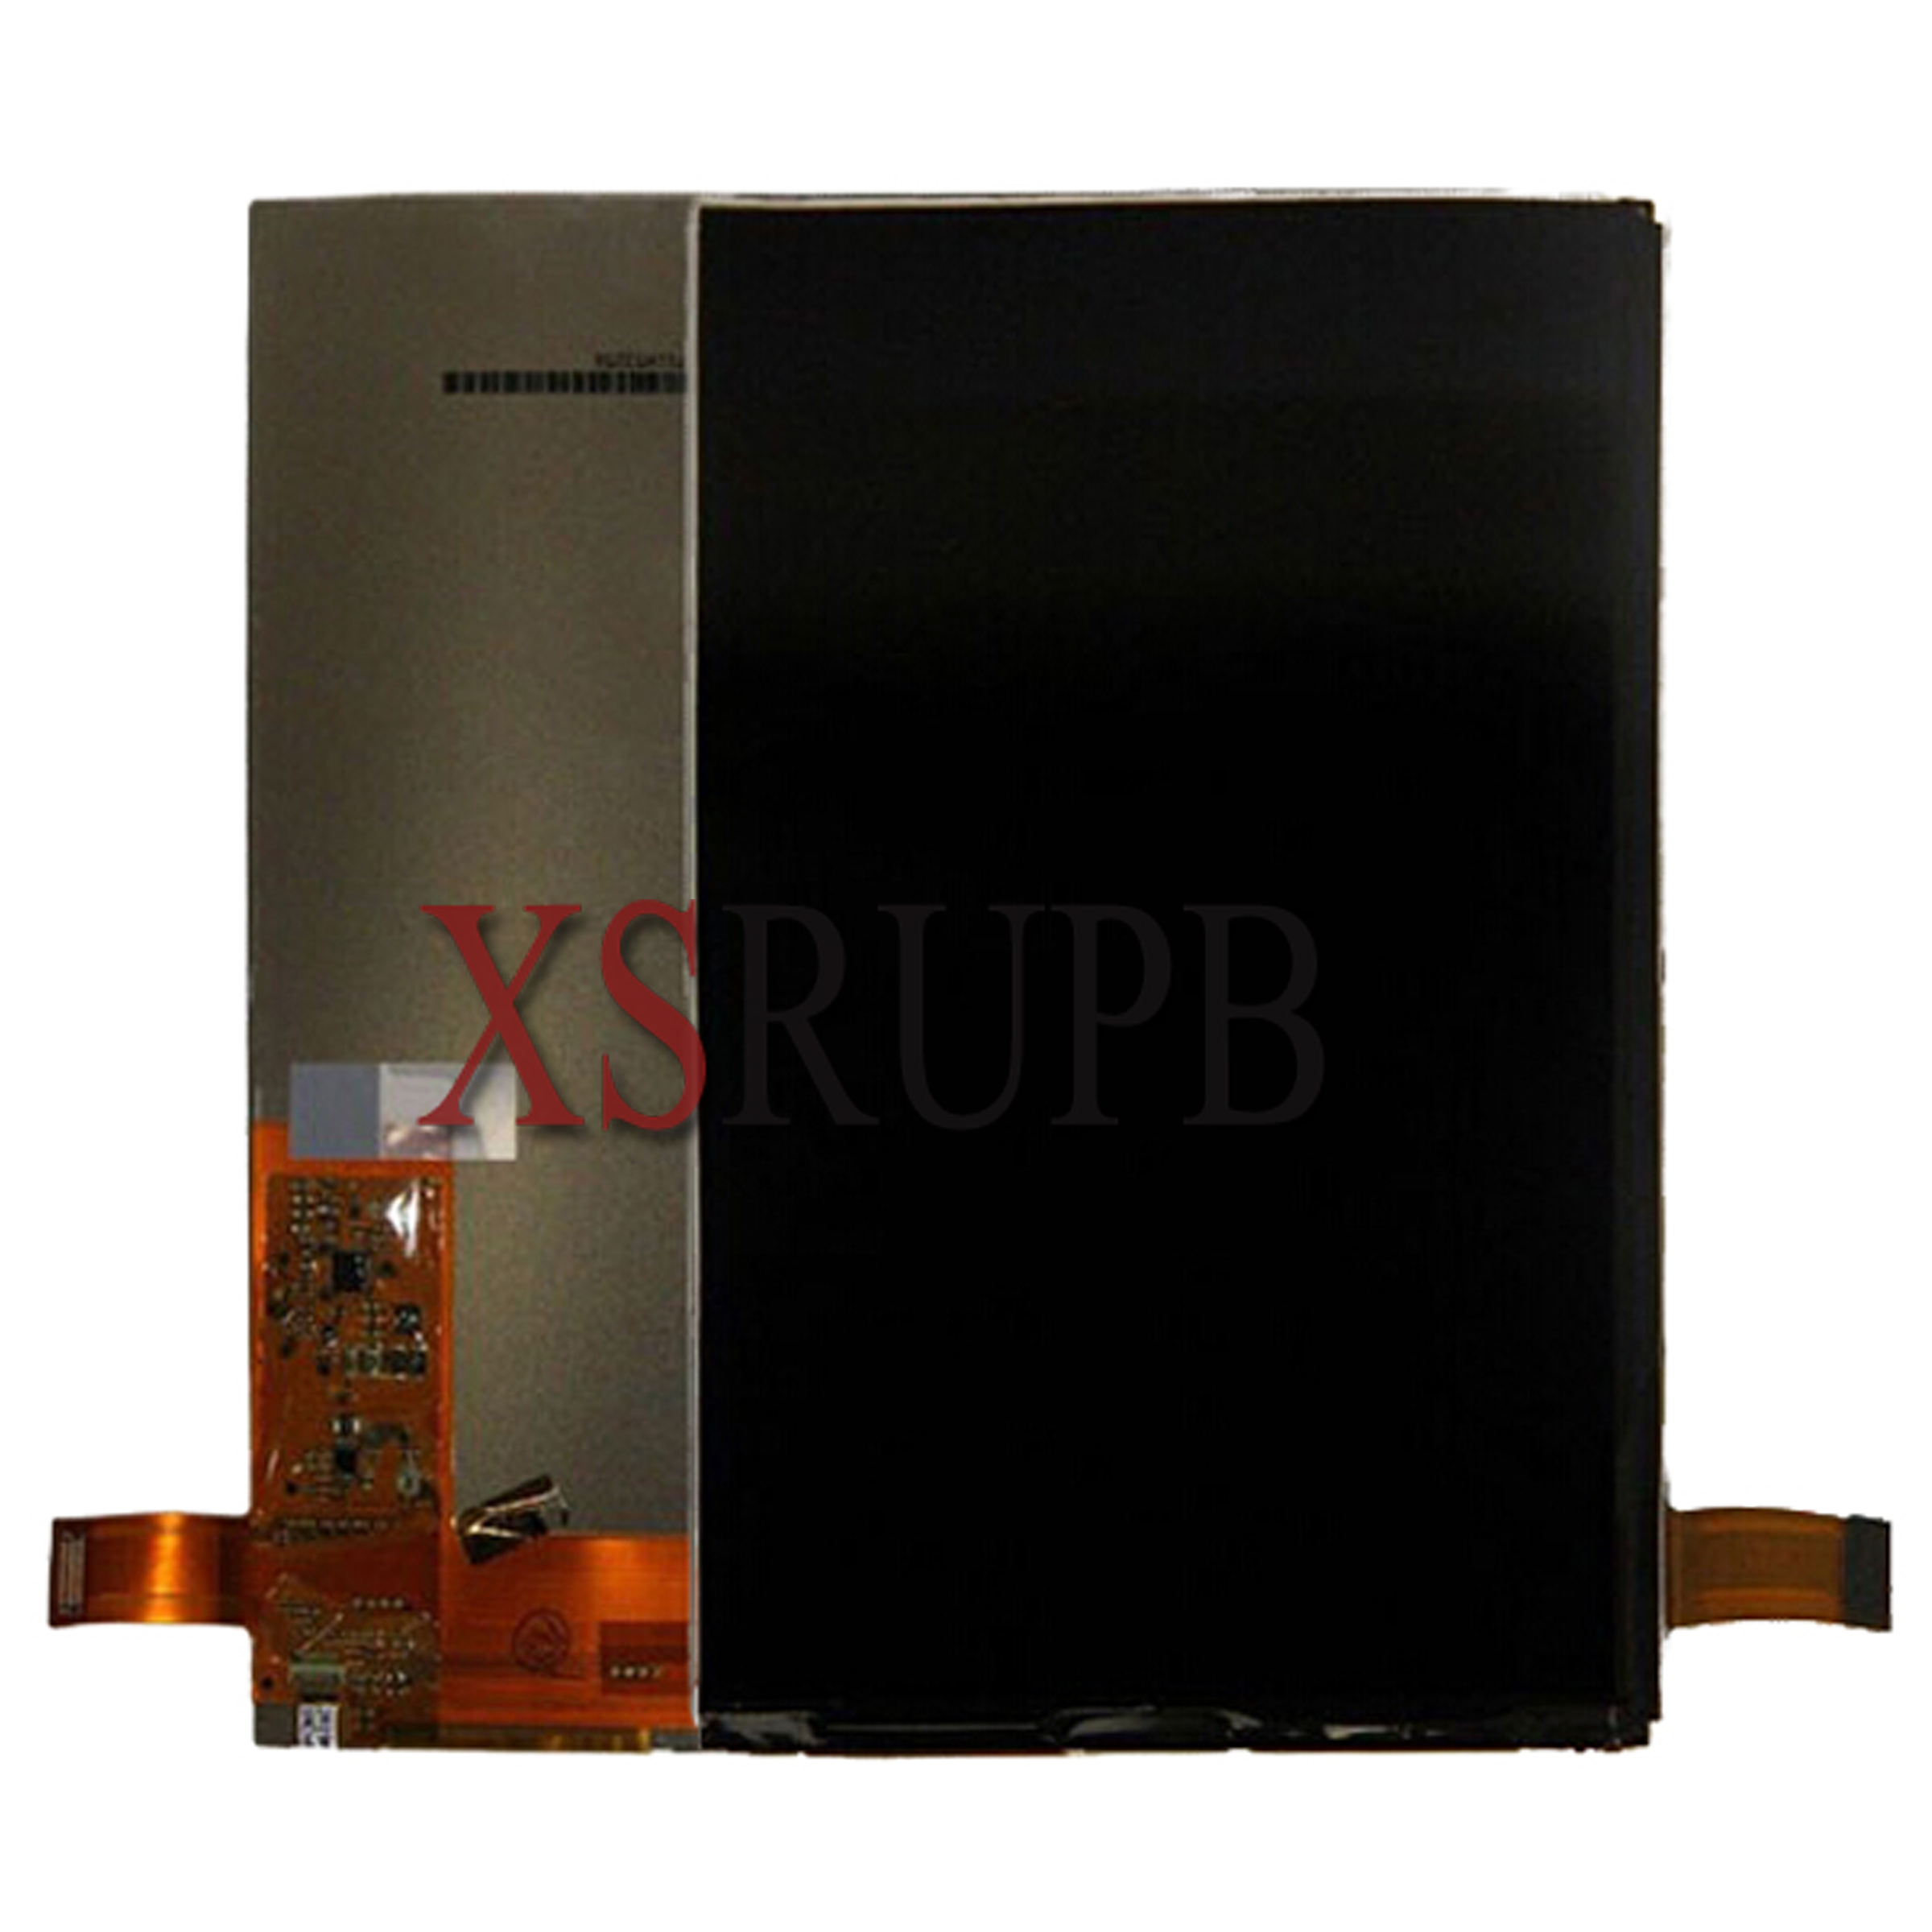 New Tablet Part 7 Inch For Asus MeMO Pad HD 7 ME173 ME173X LCD Display Screen(For Innolux Ver) for asus memo pad hd 7 me173 me173x k00b innolux version tablet lcd display screen panel replacement for tablet